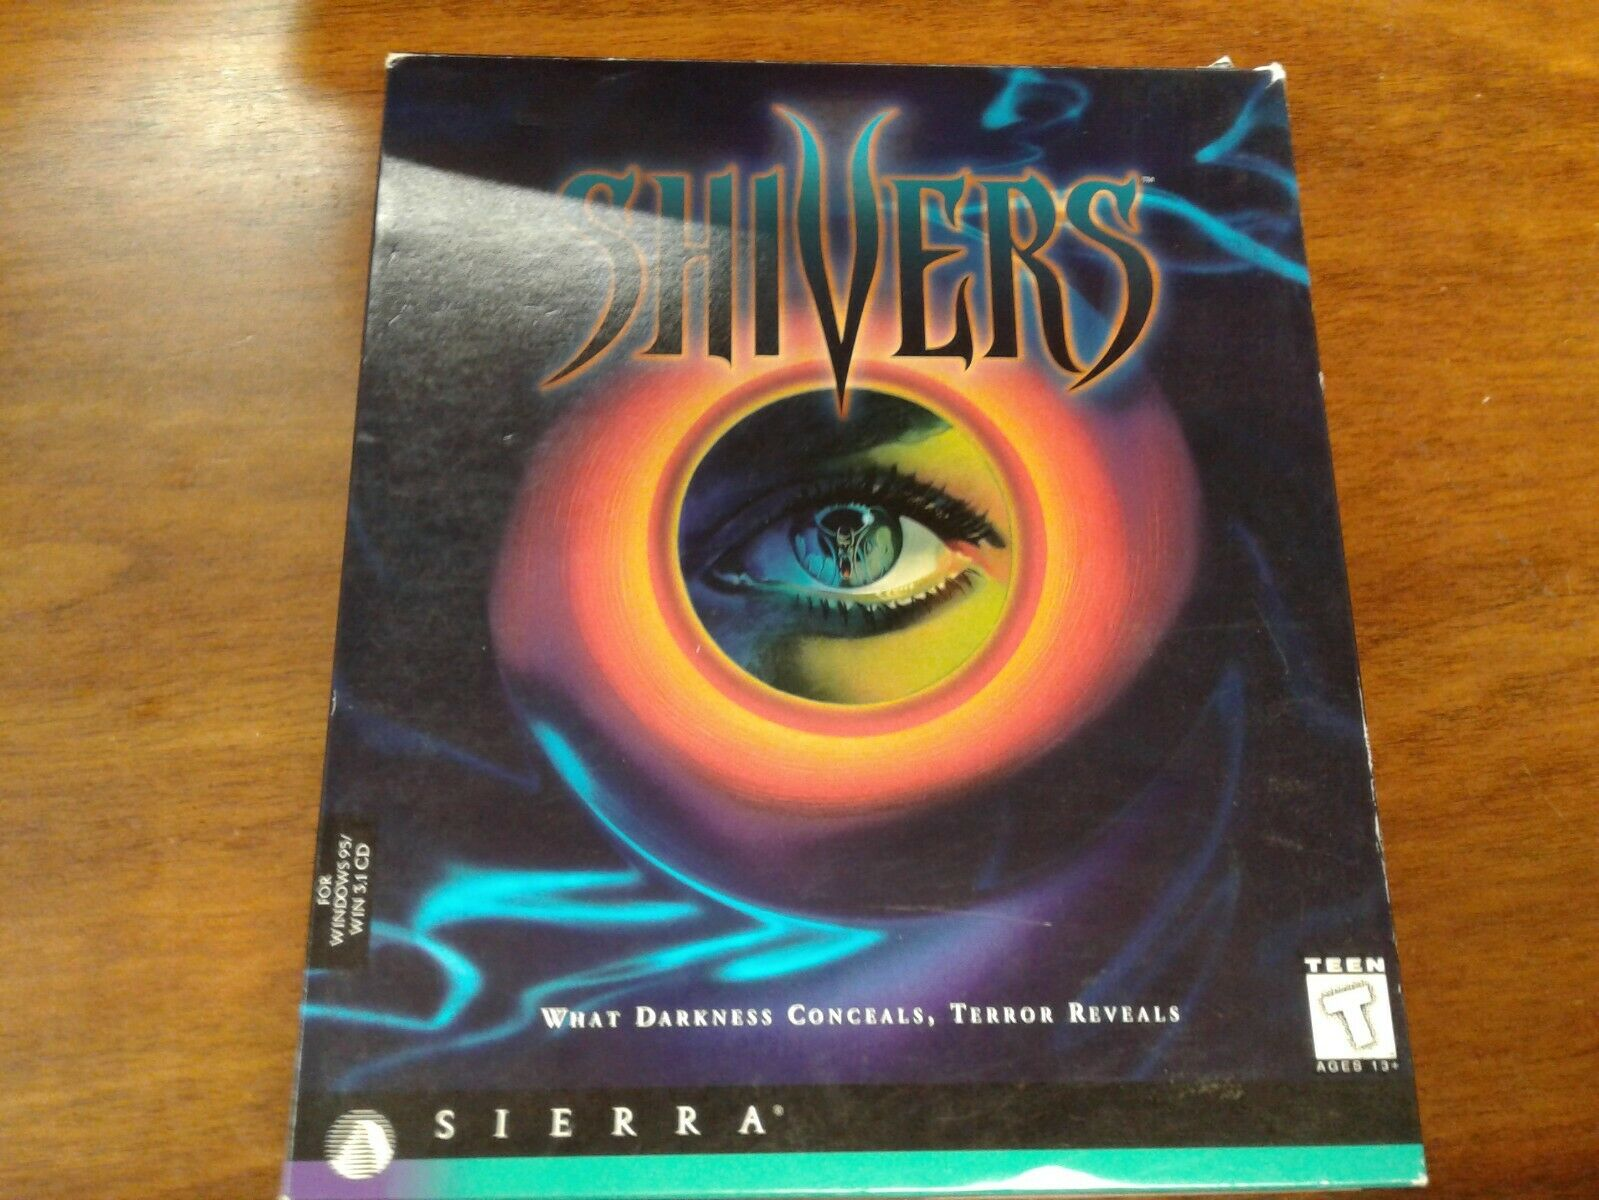 Computer Games - Shivers pc computer  game rated teen